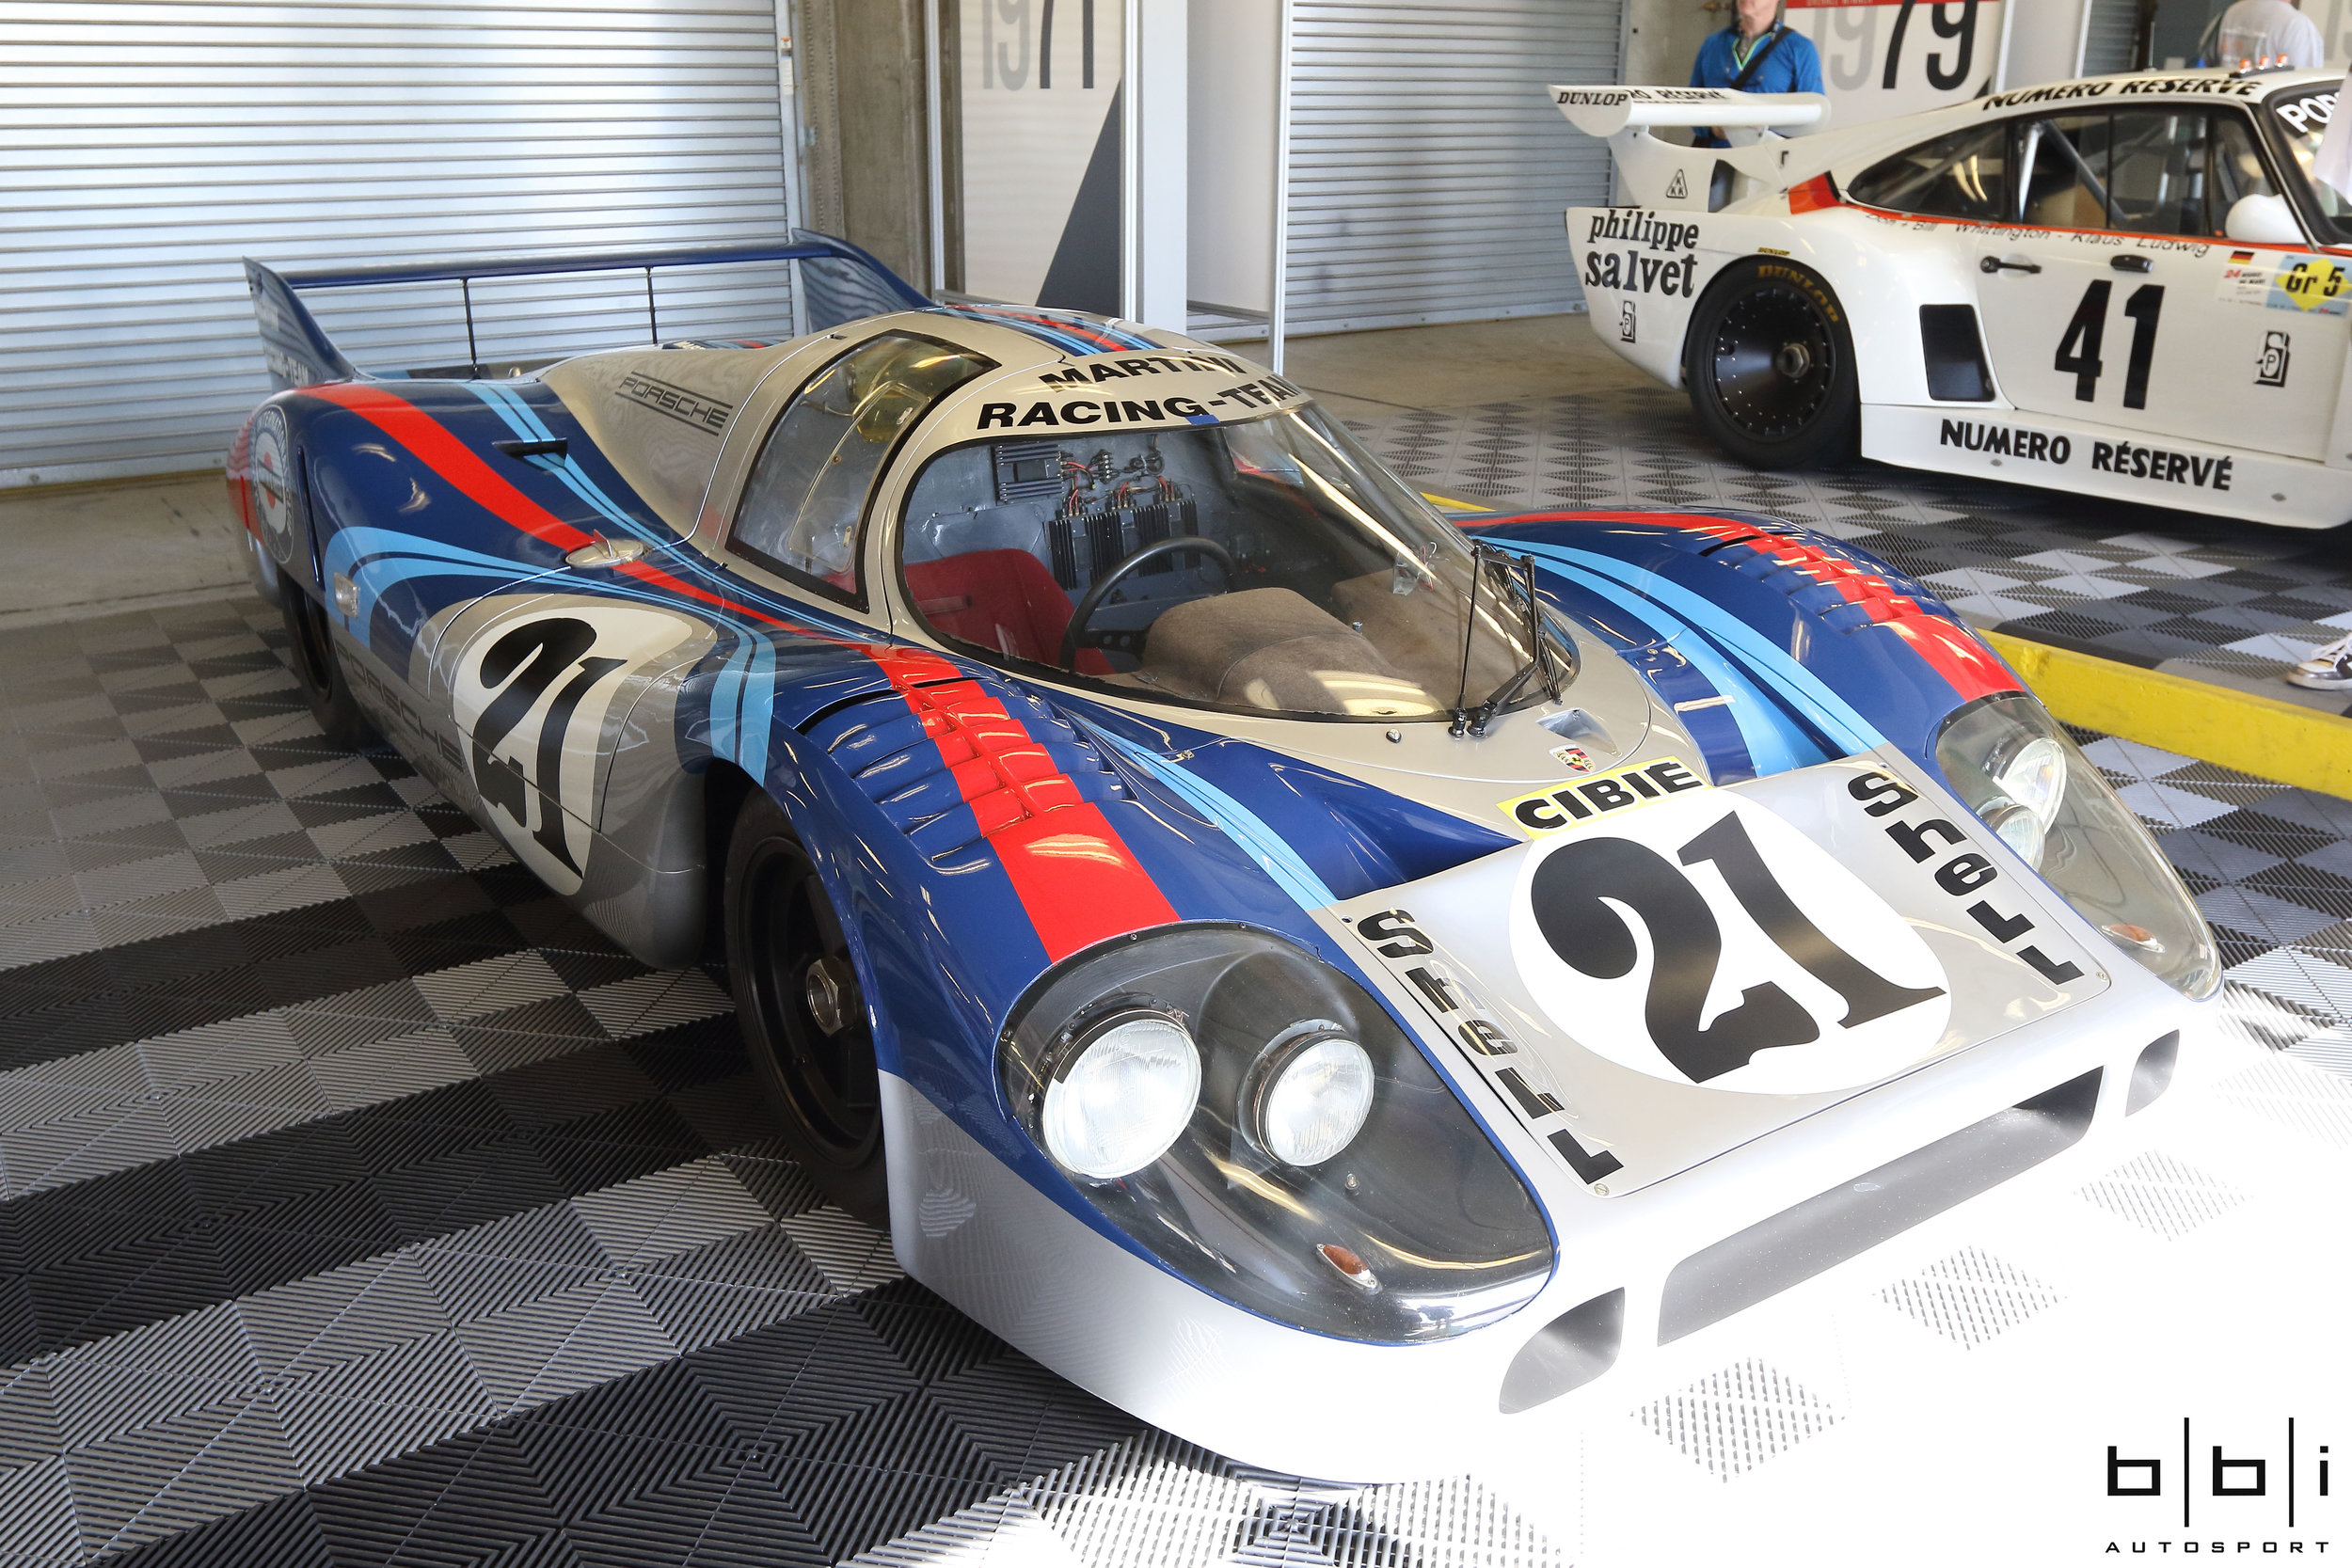 #21 1971 Porsche 917 Longtail Martini.Porsche engineers developed different car body models to meet the different demands of different racetracks. The so-called short-tail model was designed for heavily twisting roads in which a high contact pressure was necessary for fast cornering. The long-tail model was designed for fast racetracks and a high final velocity. These cars were reaching impressive speeds on the Mulsanne. In 1971, during night practice, a 917LH (Langheck - long tail), driven by young Mexican driver Pedro Rodriguez (1968 Le Mans winner), clocked at a top speed of 398 km/h, or about 249 mph.